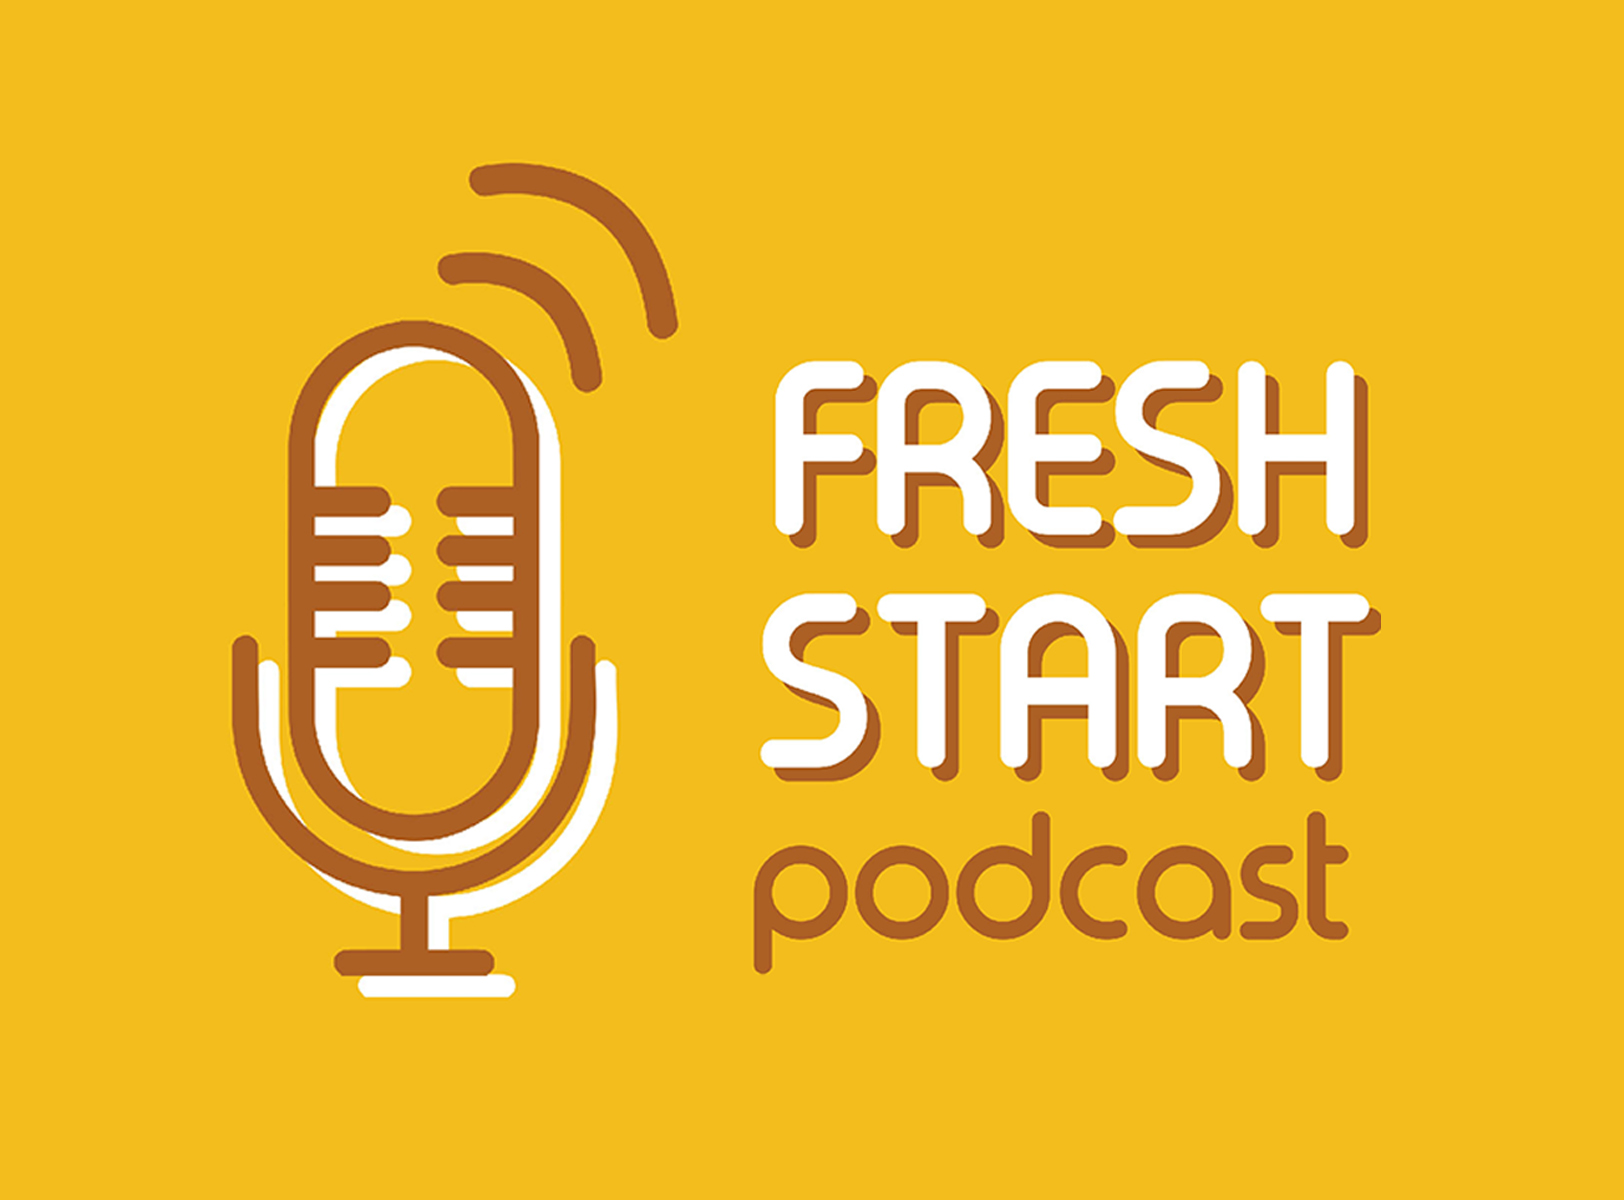 Fresh Start: Podcast News (1/24/2019 Thu.)